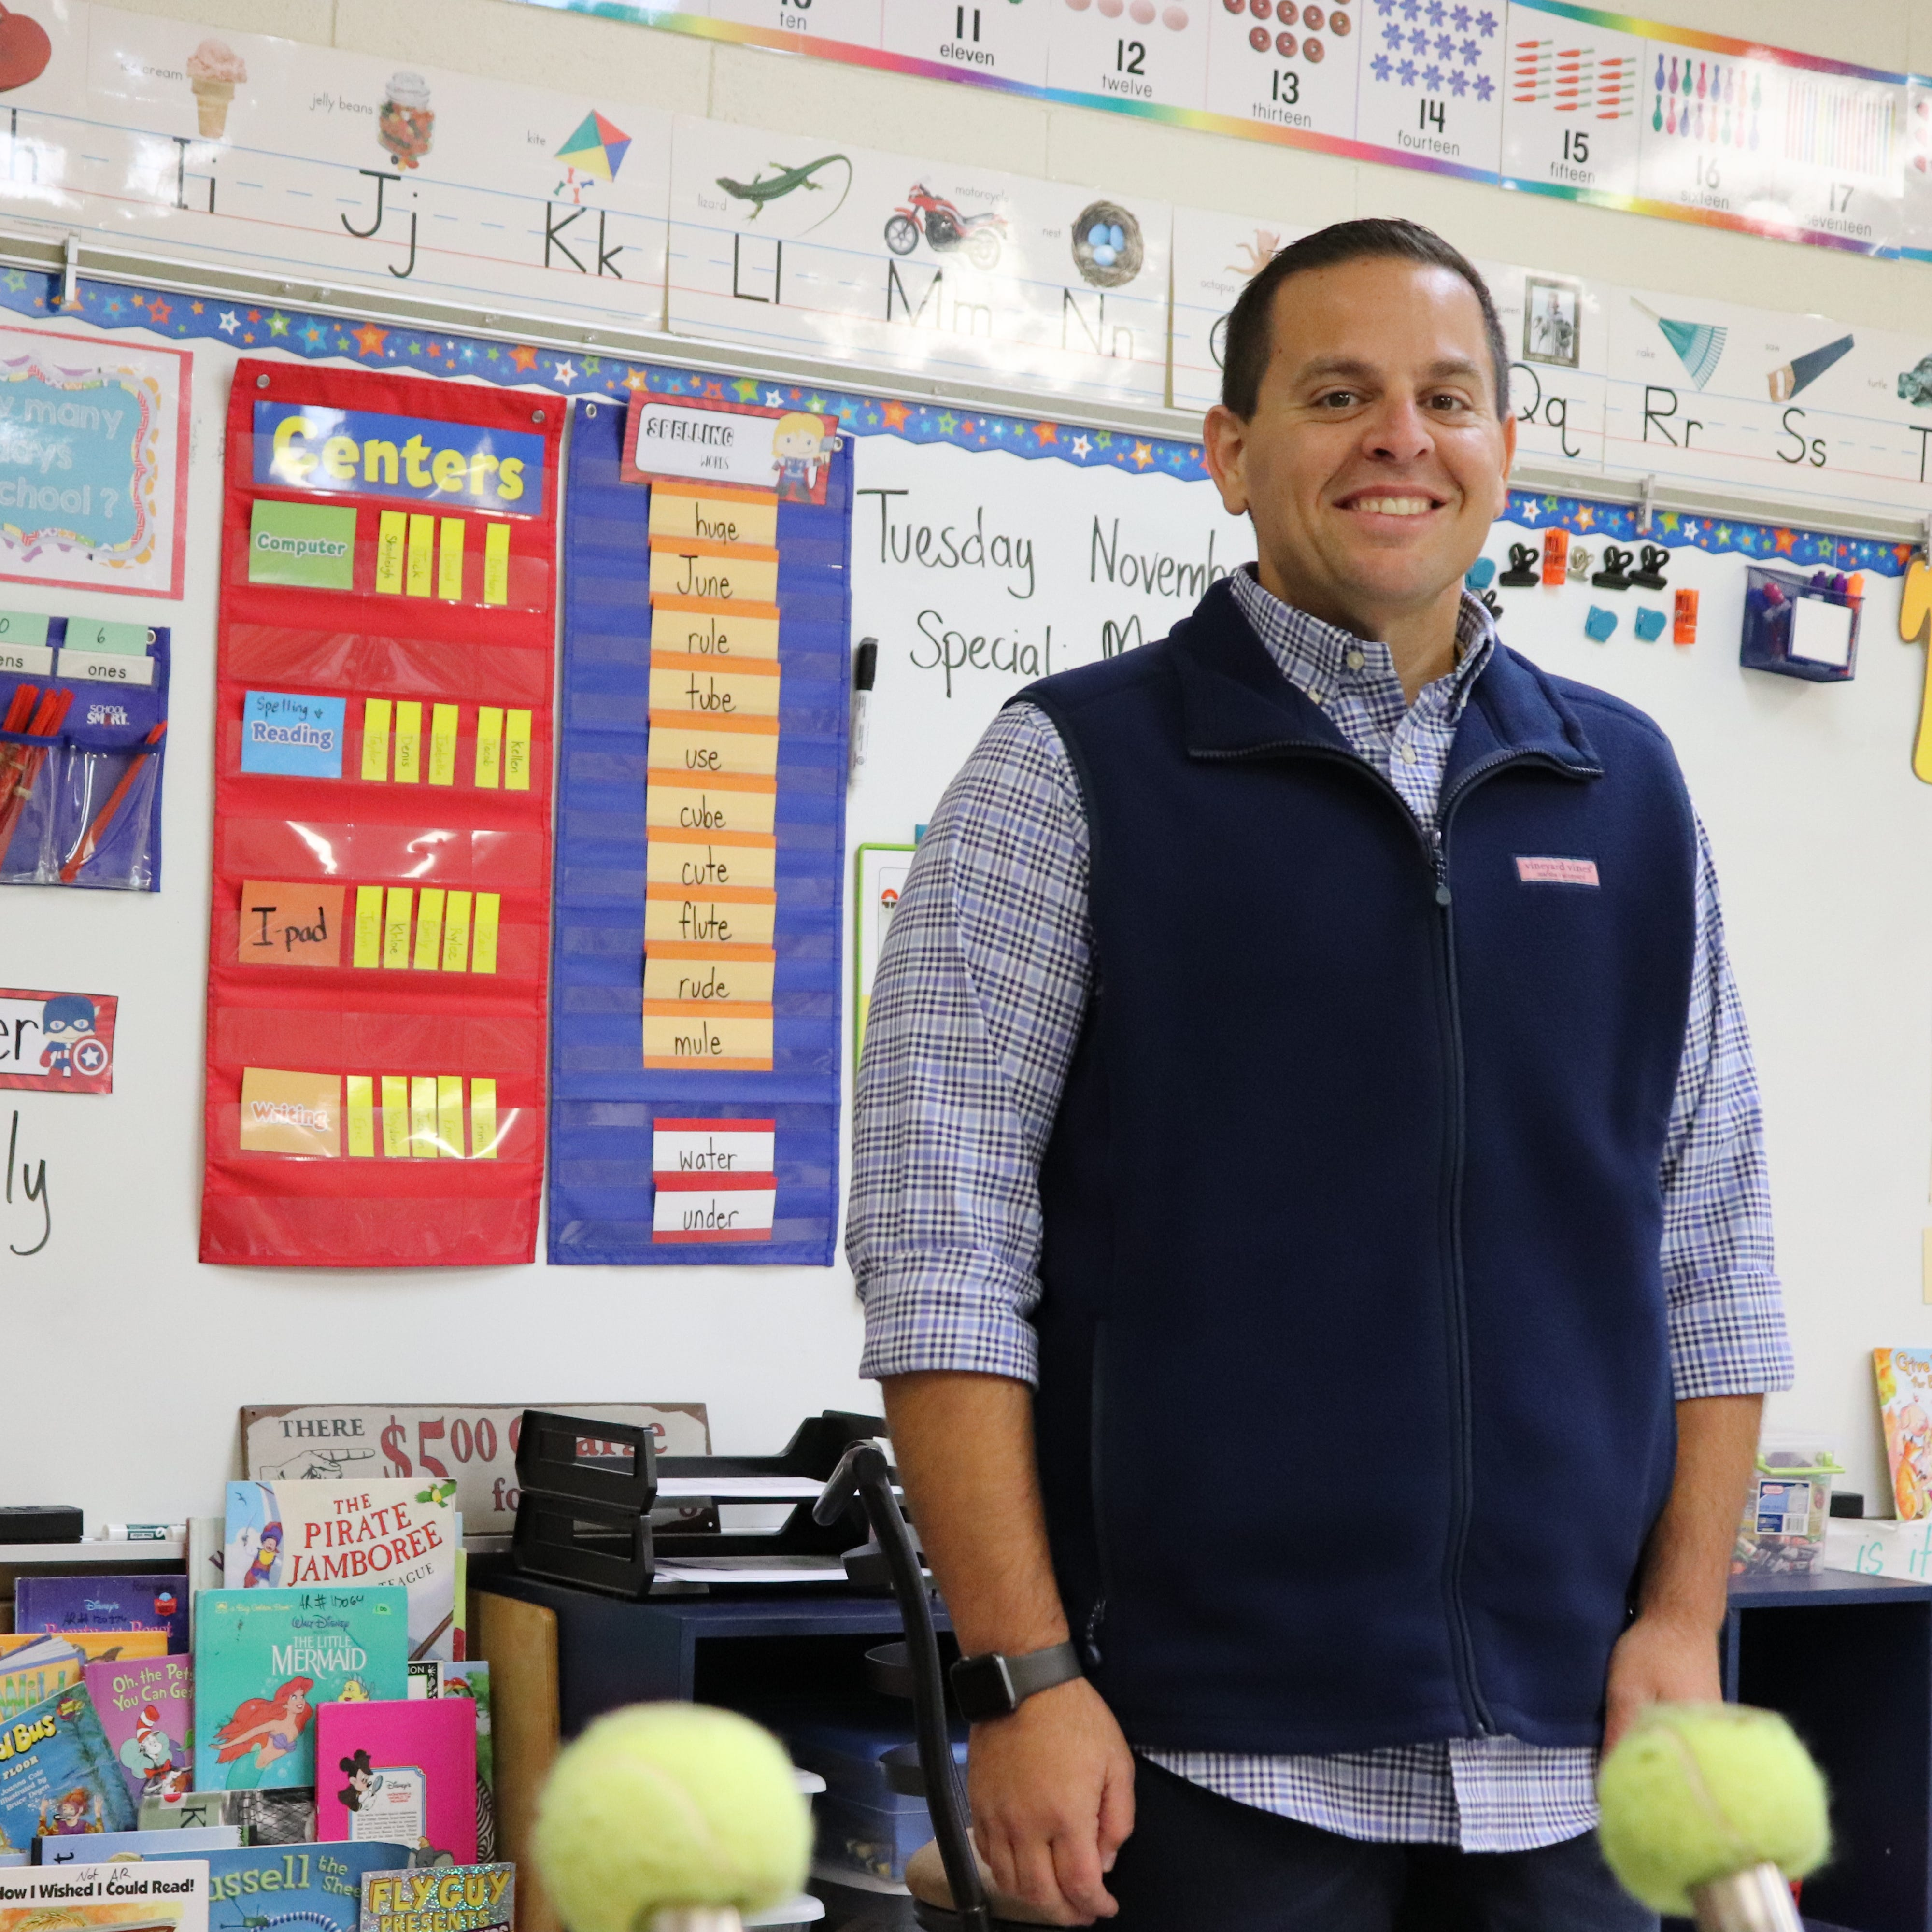 Want to drop 180 pounds in a year? Here's how an East Tennessee school teacher did it.